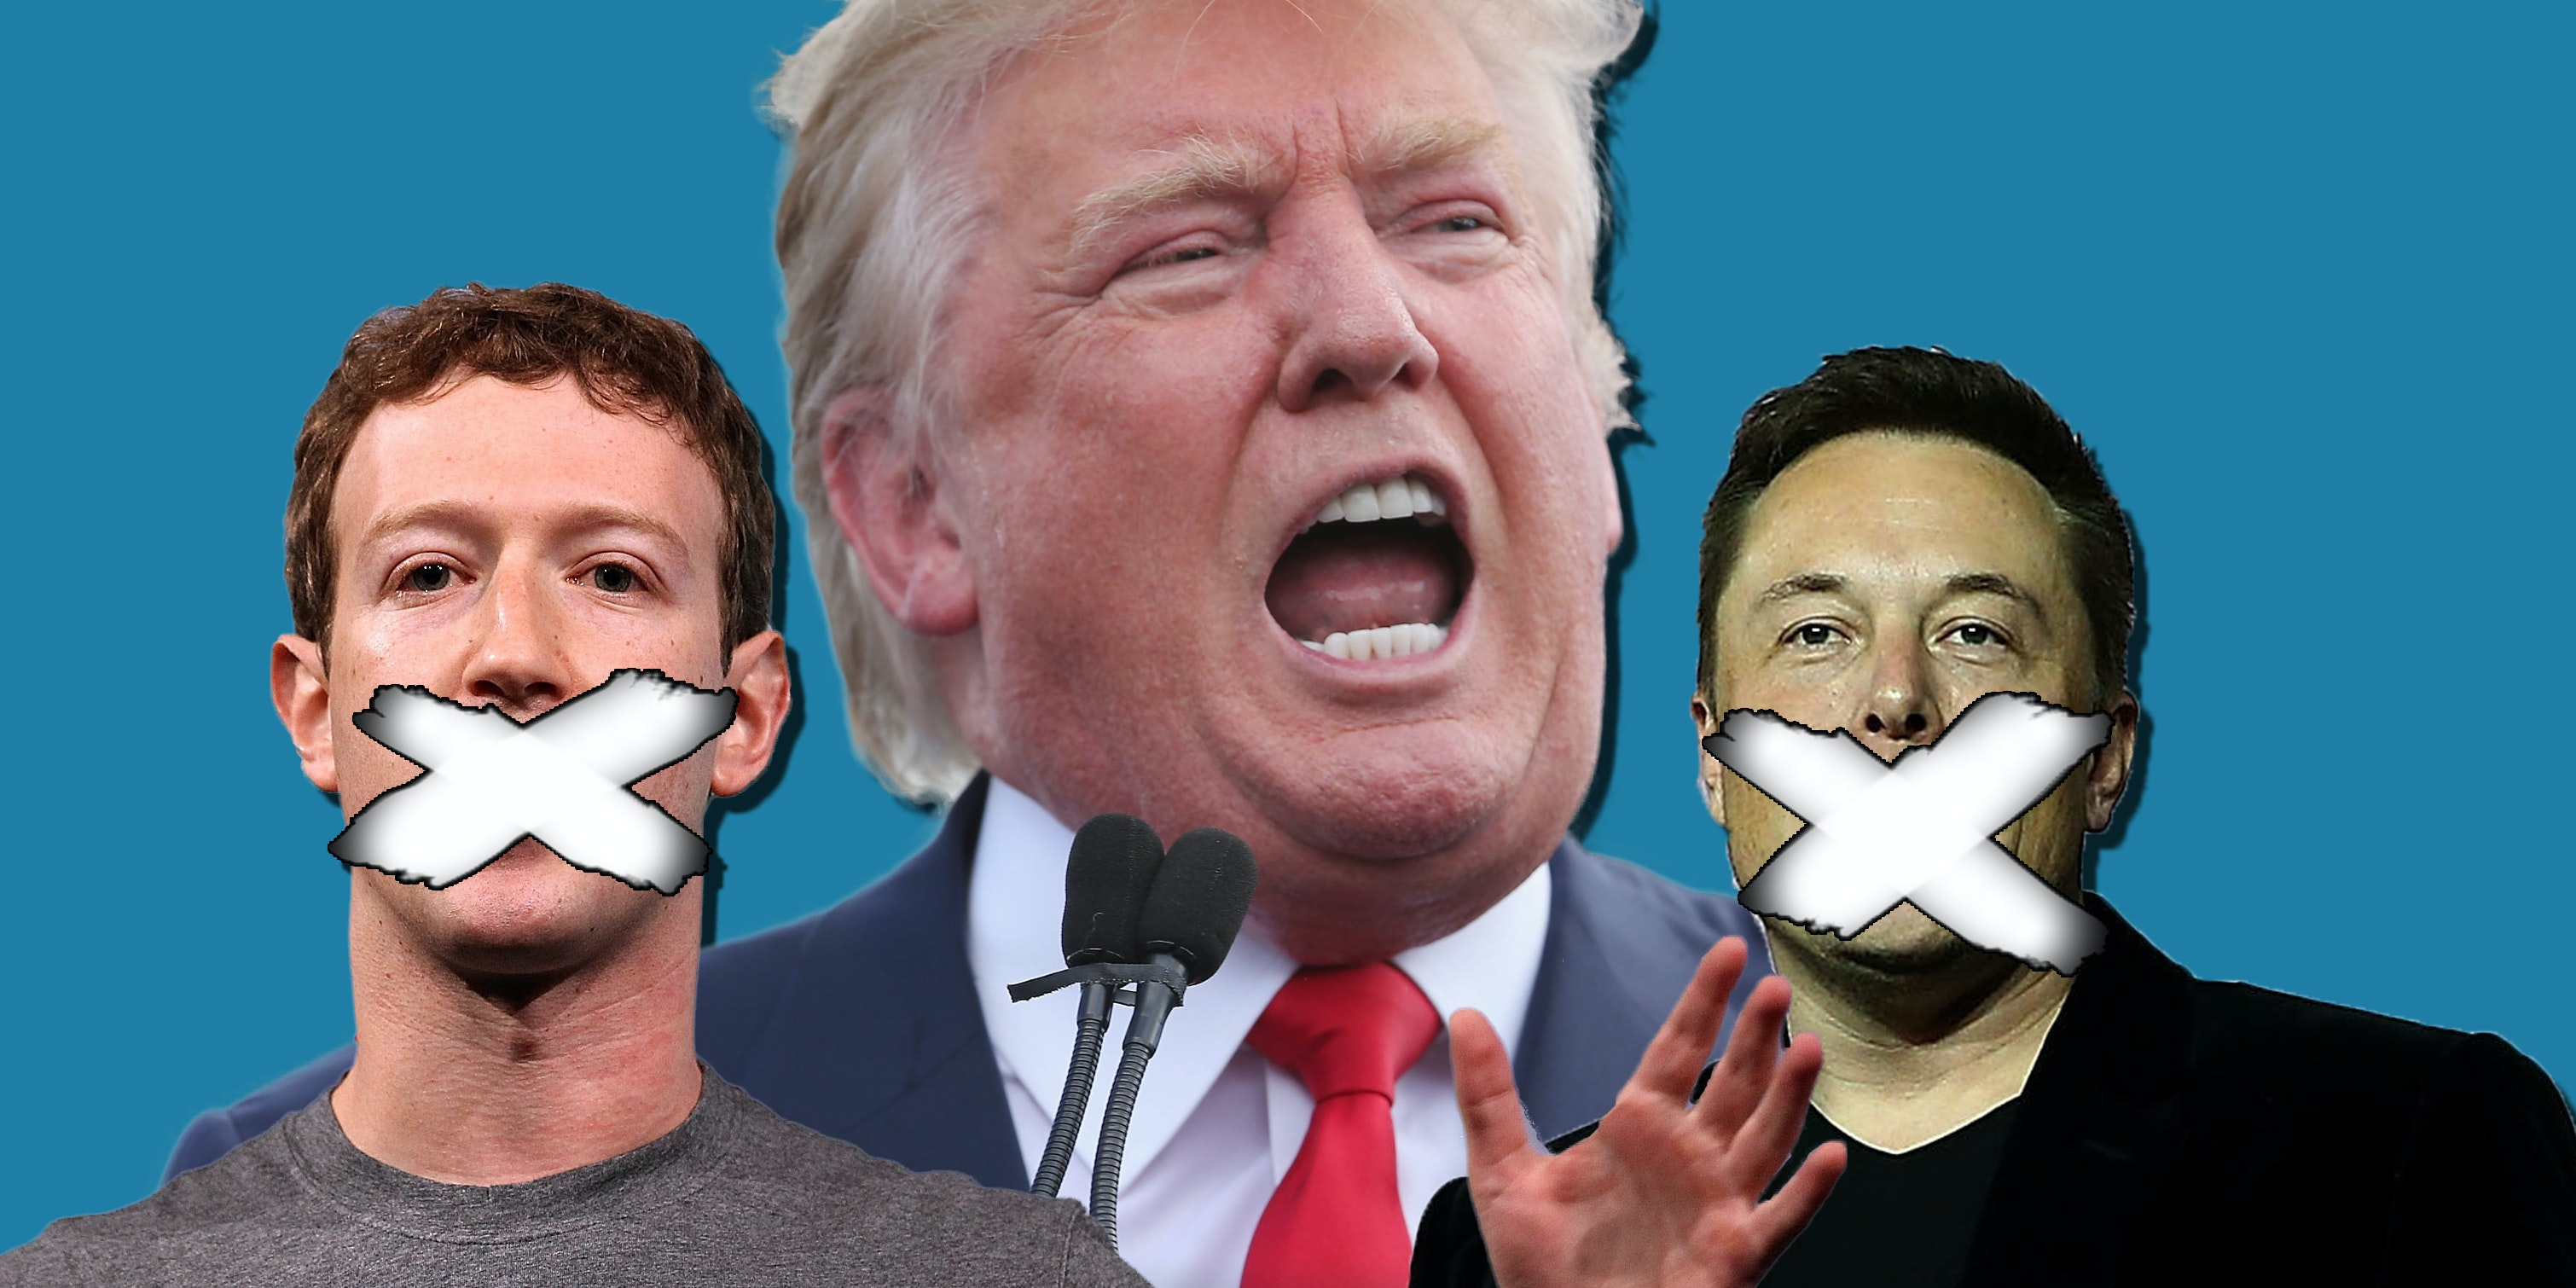 Some of the biggest names in tech stayed quiet on the Wednesday after Donald Trump's victory.